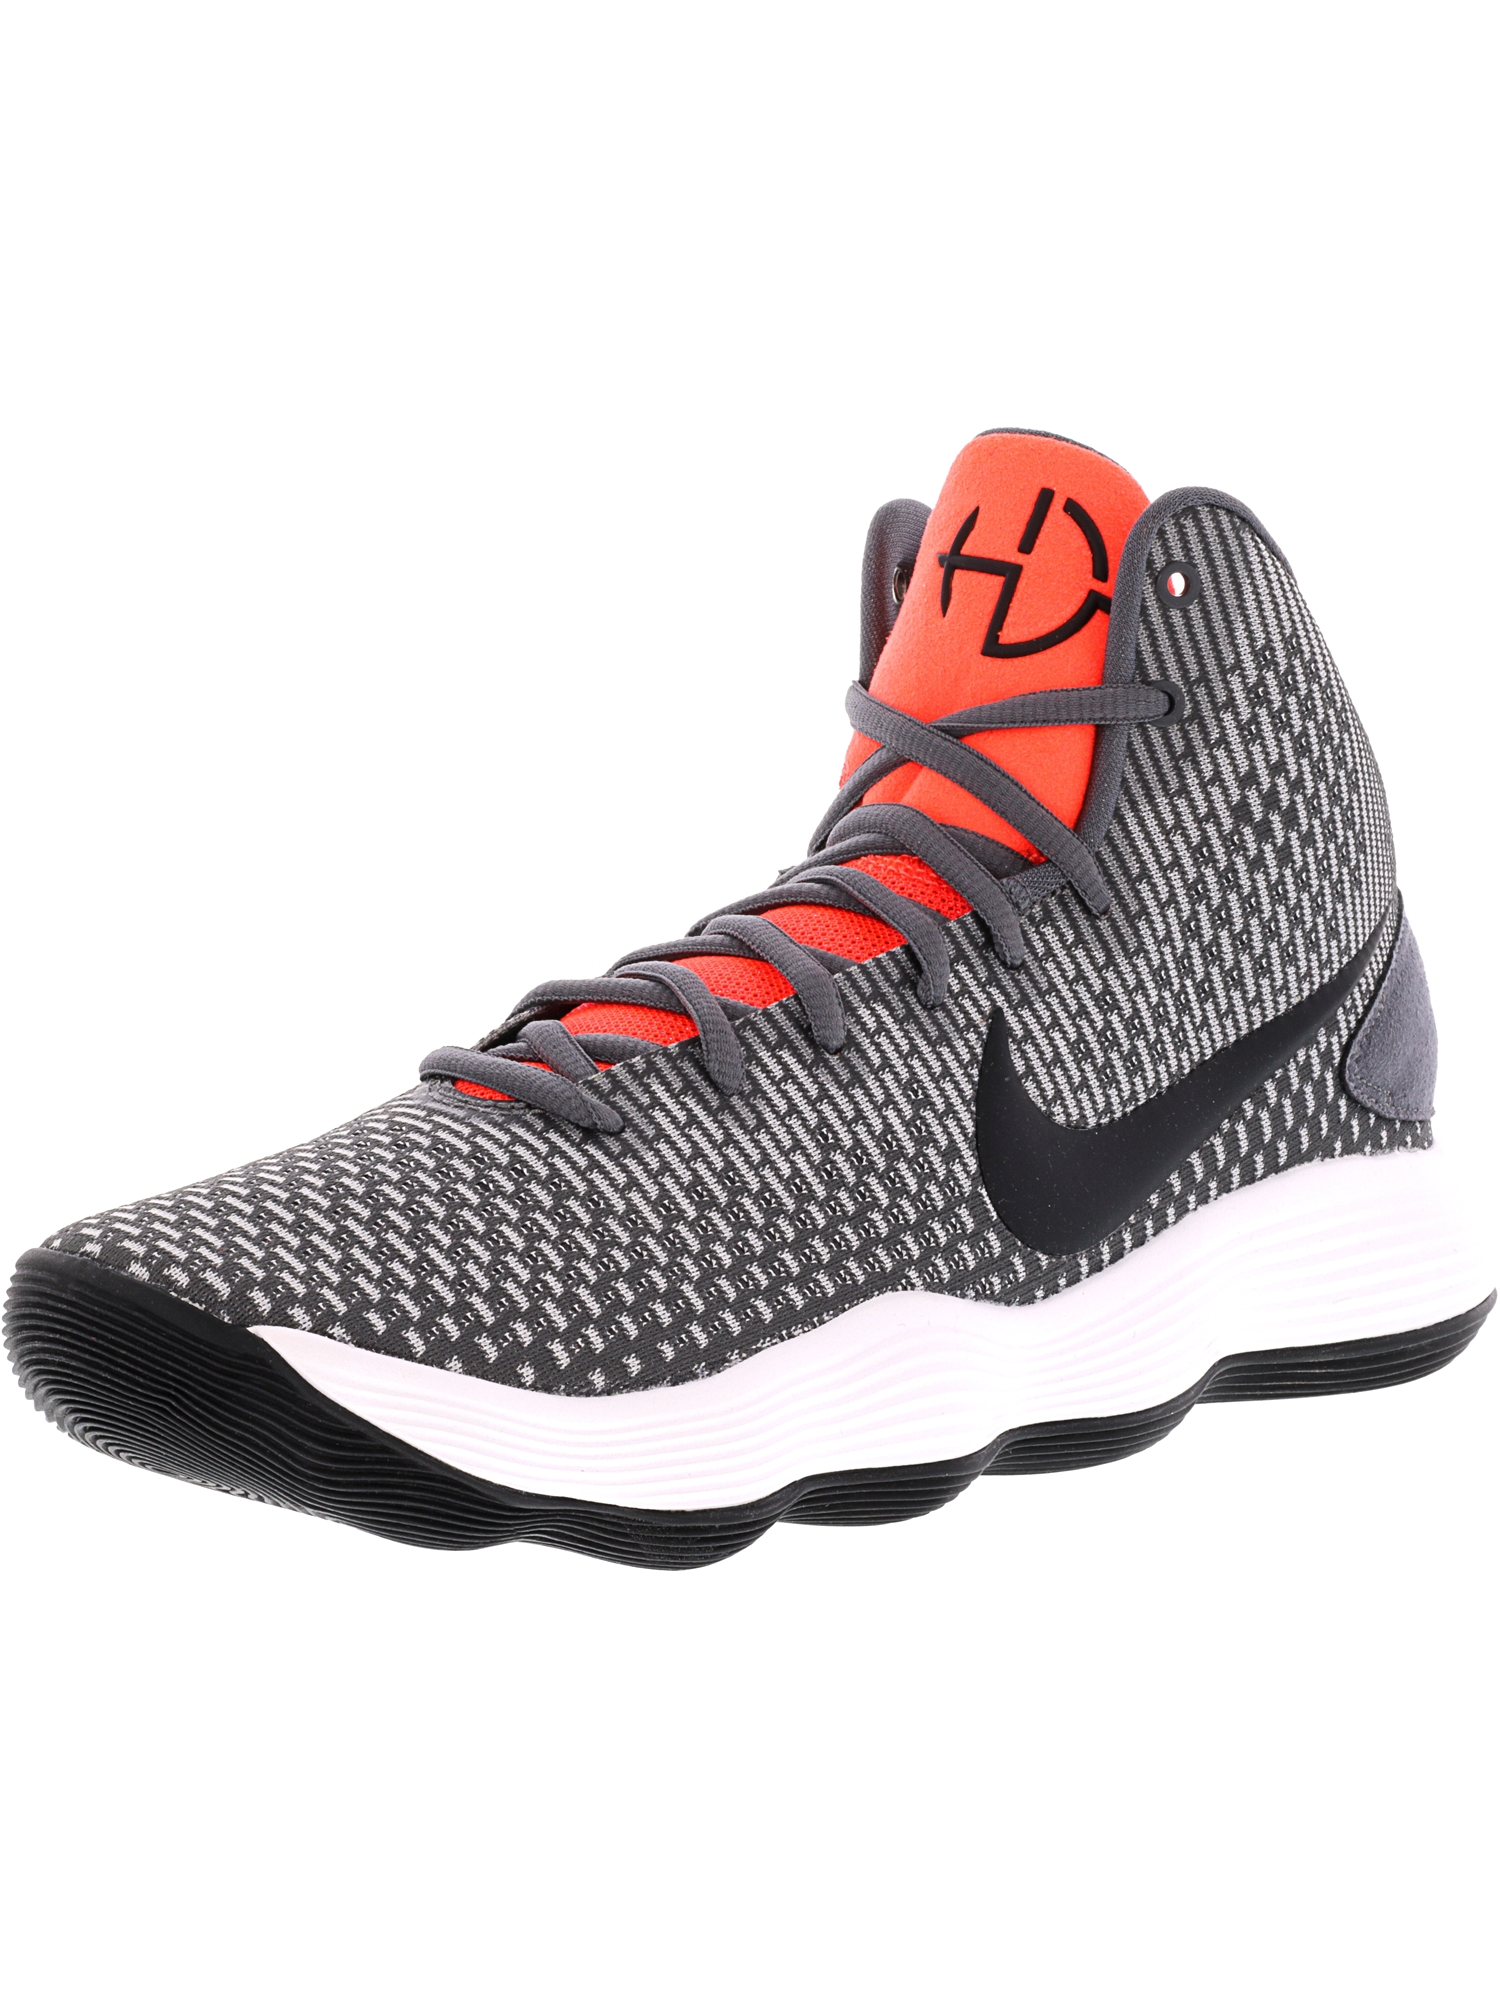 5b743674e341 ... gym red white e2fe1 a1d36  denmark nike mens hyperdunk 2017 dark grey black  bright crimson high top basketball shoe 9fd26 8e0cf